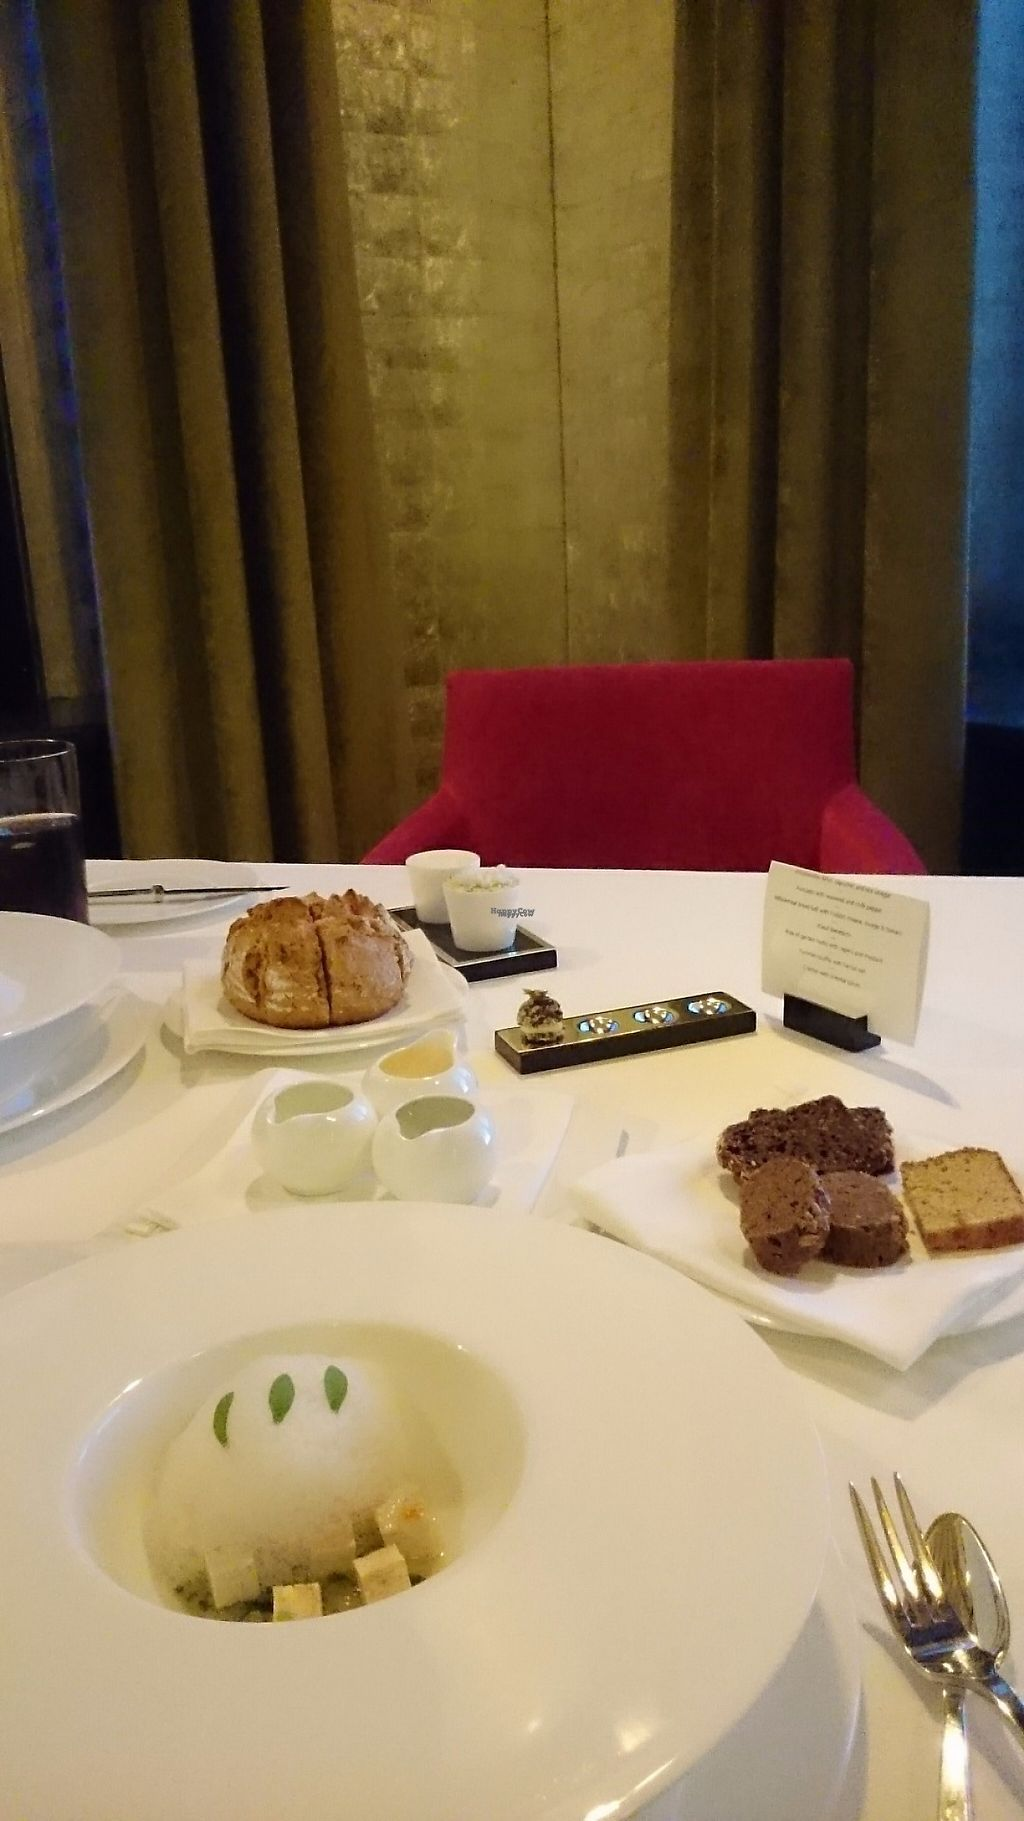 """Photo of The Restaurant at The Dolder Grand  by <a href=""""/members/profile/ZoraySpielvogel"""">ZoraySpielvogel</a> <br/>Another vegan culinary art by the chef.  <br/> December 25, 2016  - <a href='/contact/abuse/image/84513/204671'>Report</a>"""